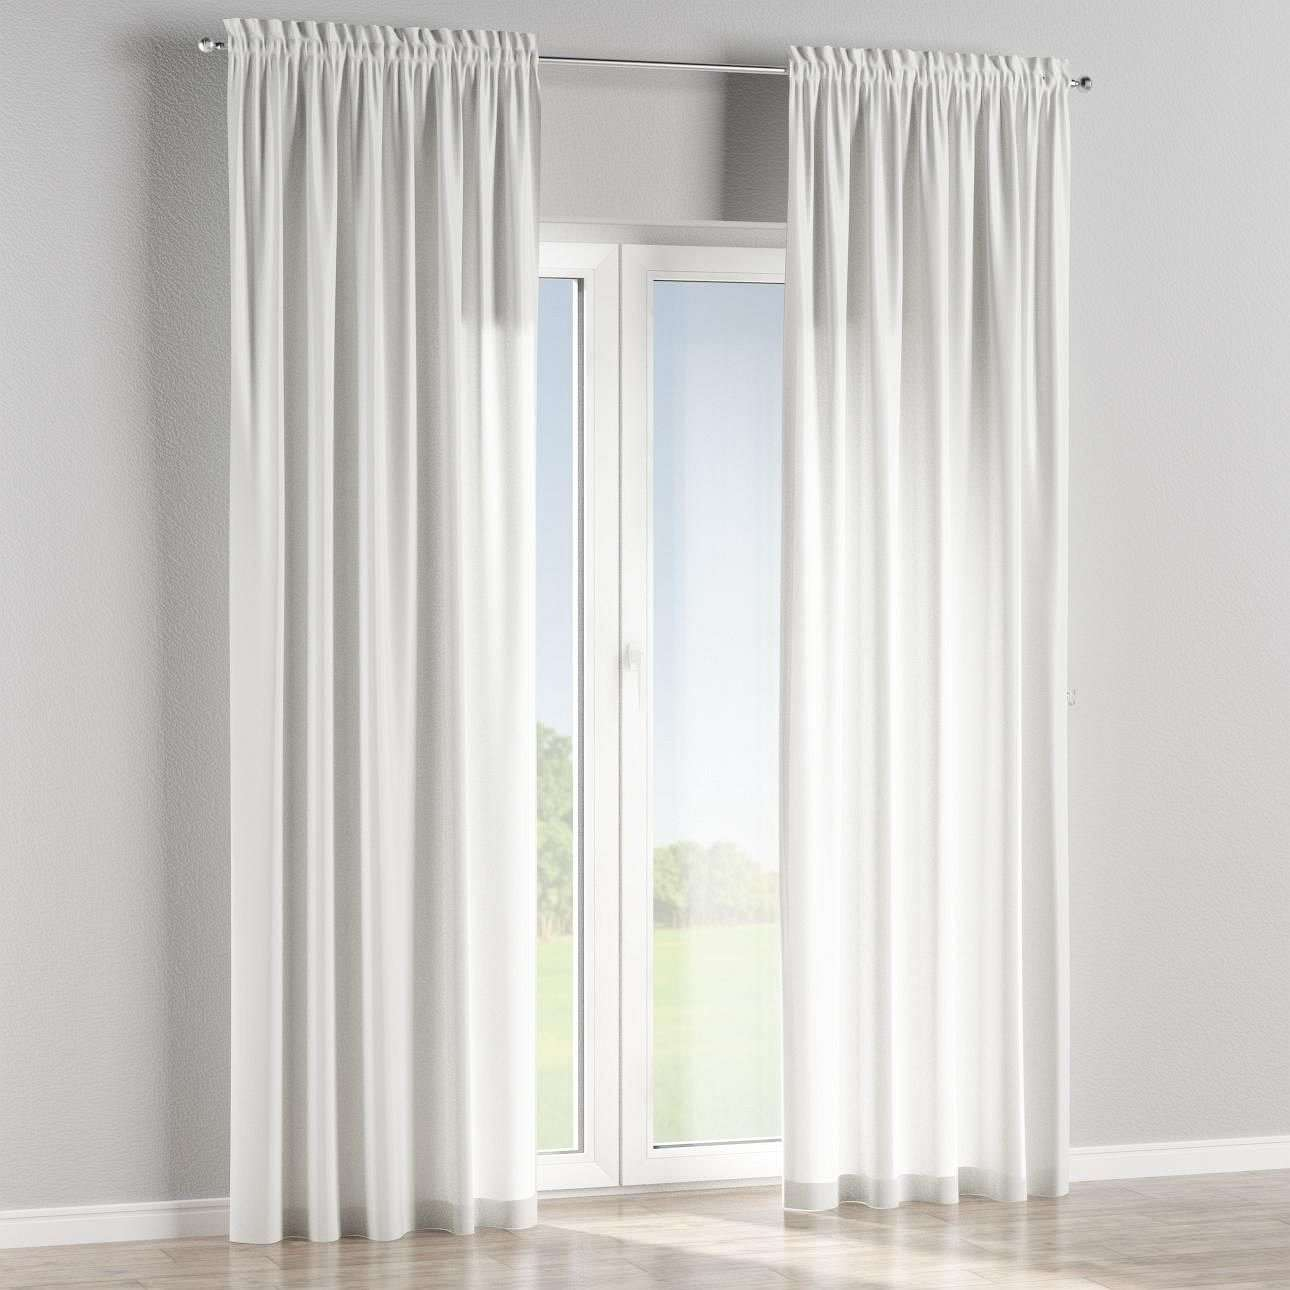 Slot and frill curtains in collection Rustica, fabric: 138-22